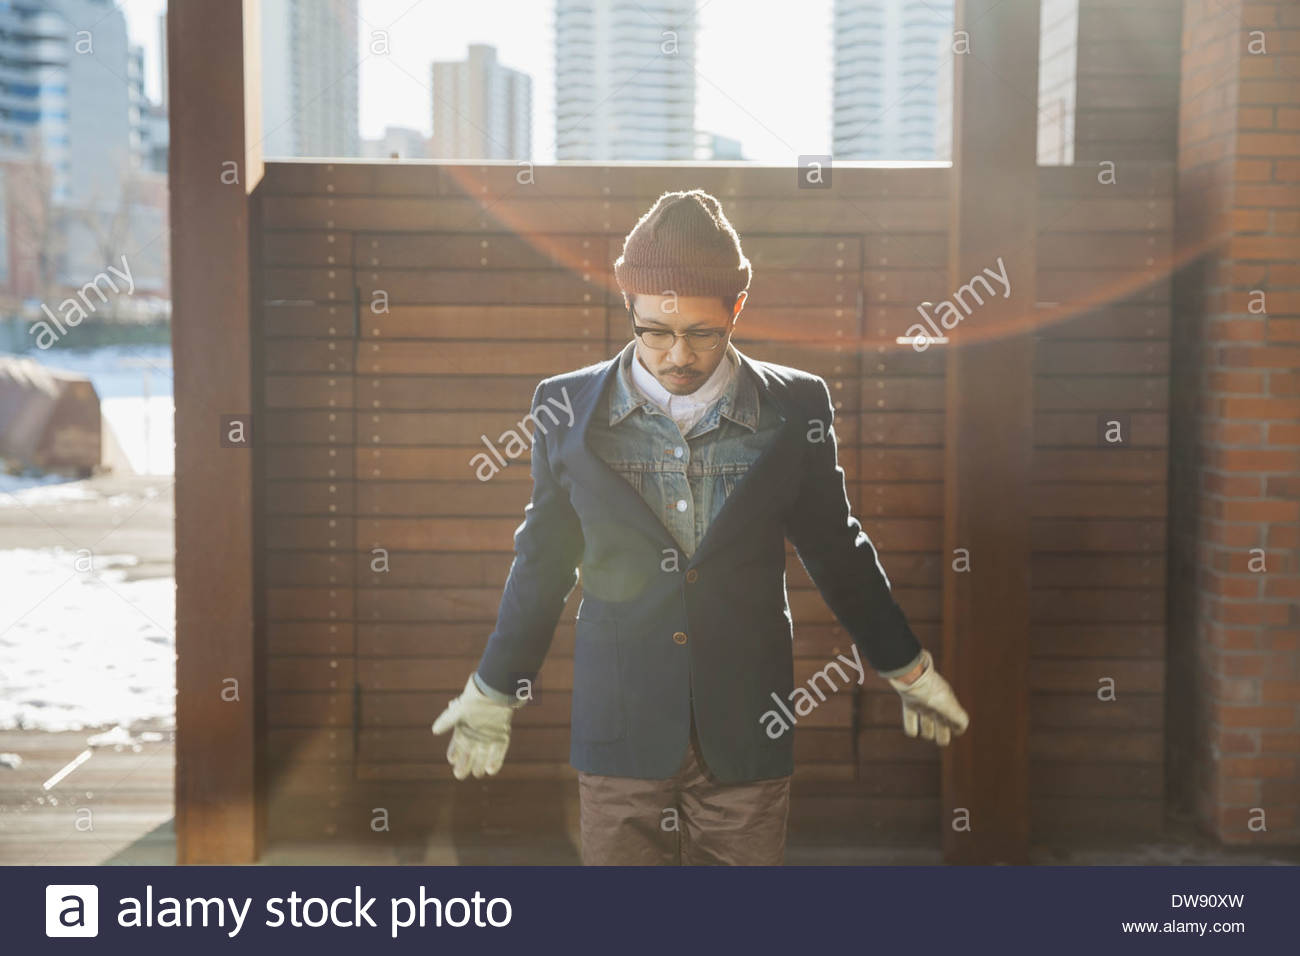 Man standing outdoors looking down - Stock Image